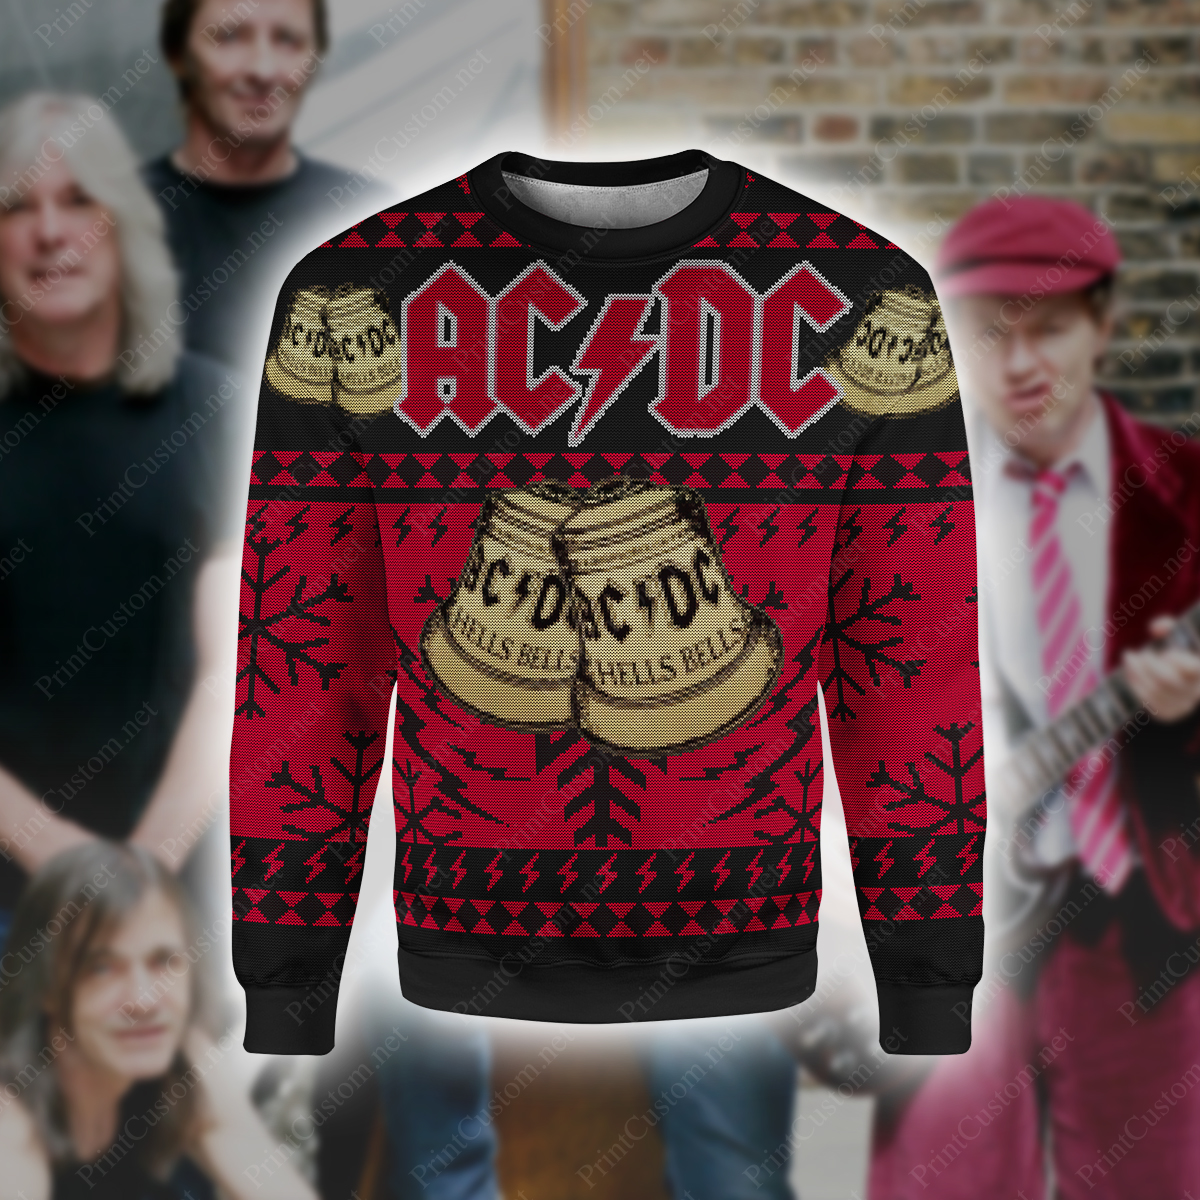 ACDC hells bells full printing ugly christmas sweater 1